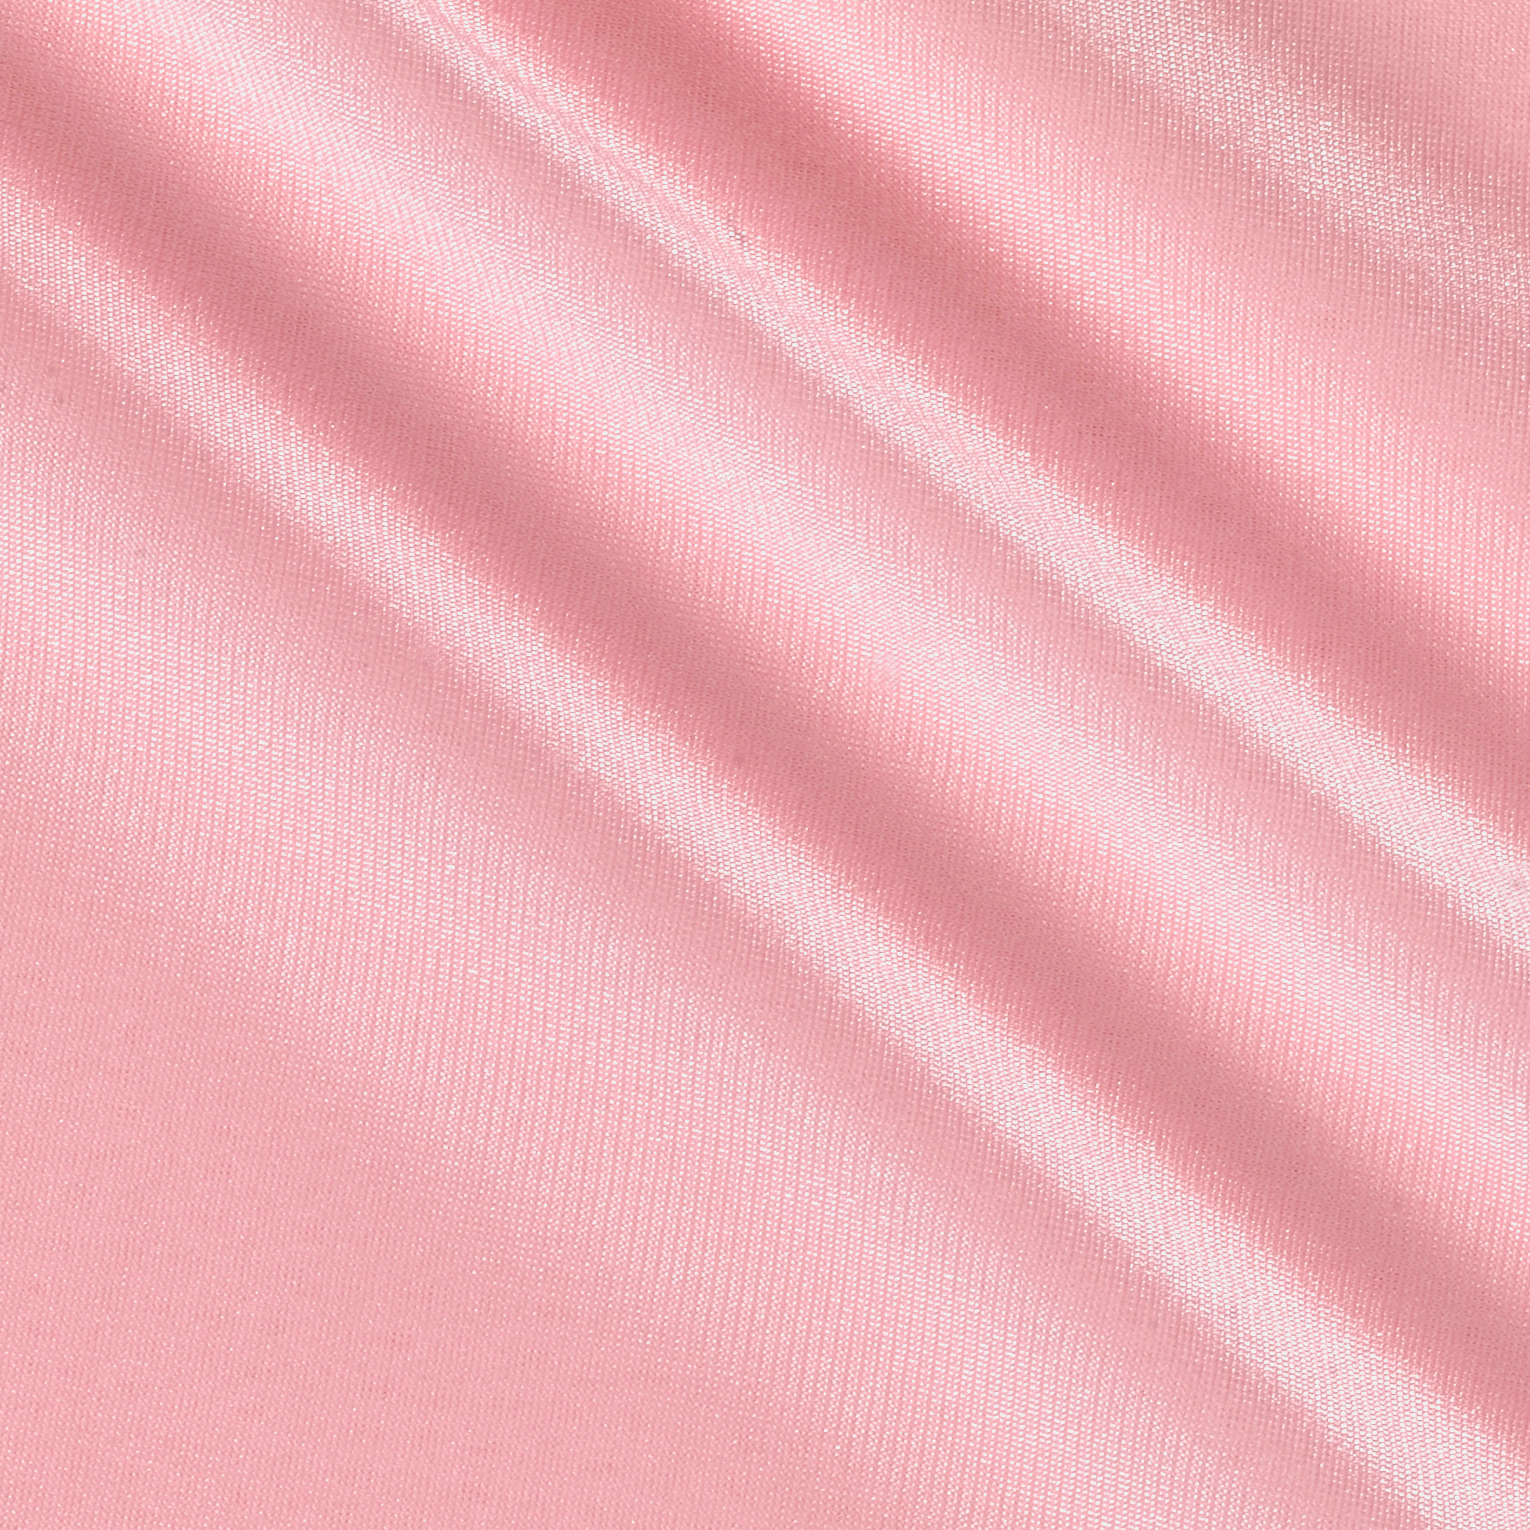 Image of Alpine 108'' 40 Denier Tricot Pink Fabric